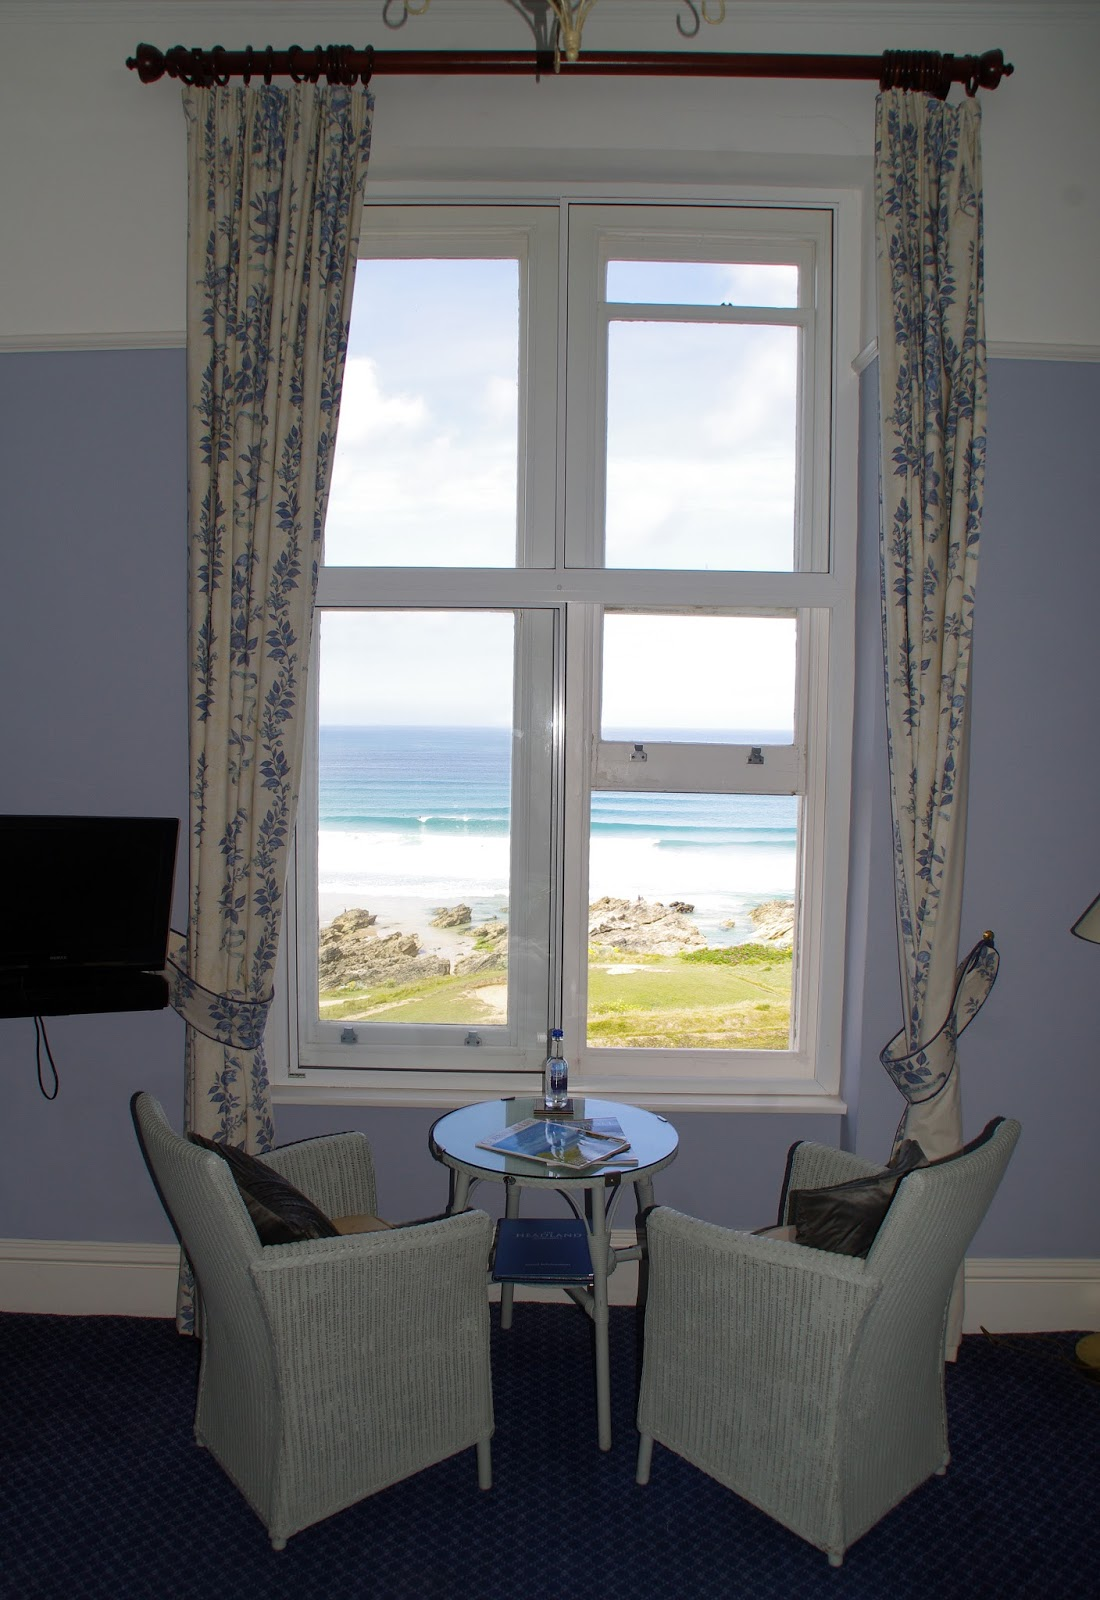 Headland Hotel Newquay Cornwall Room View